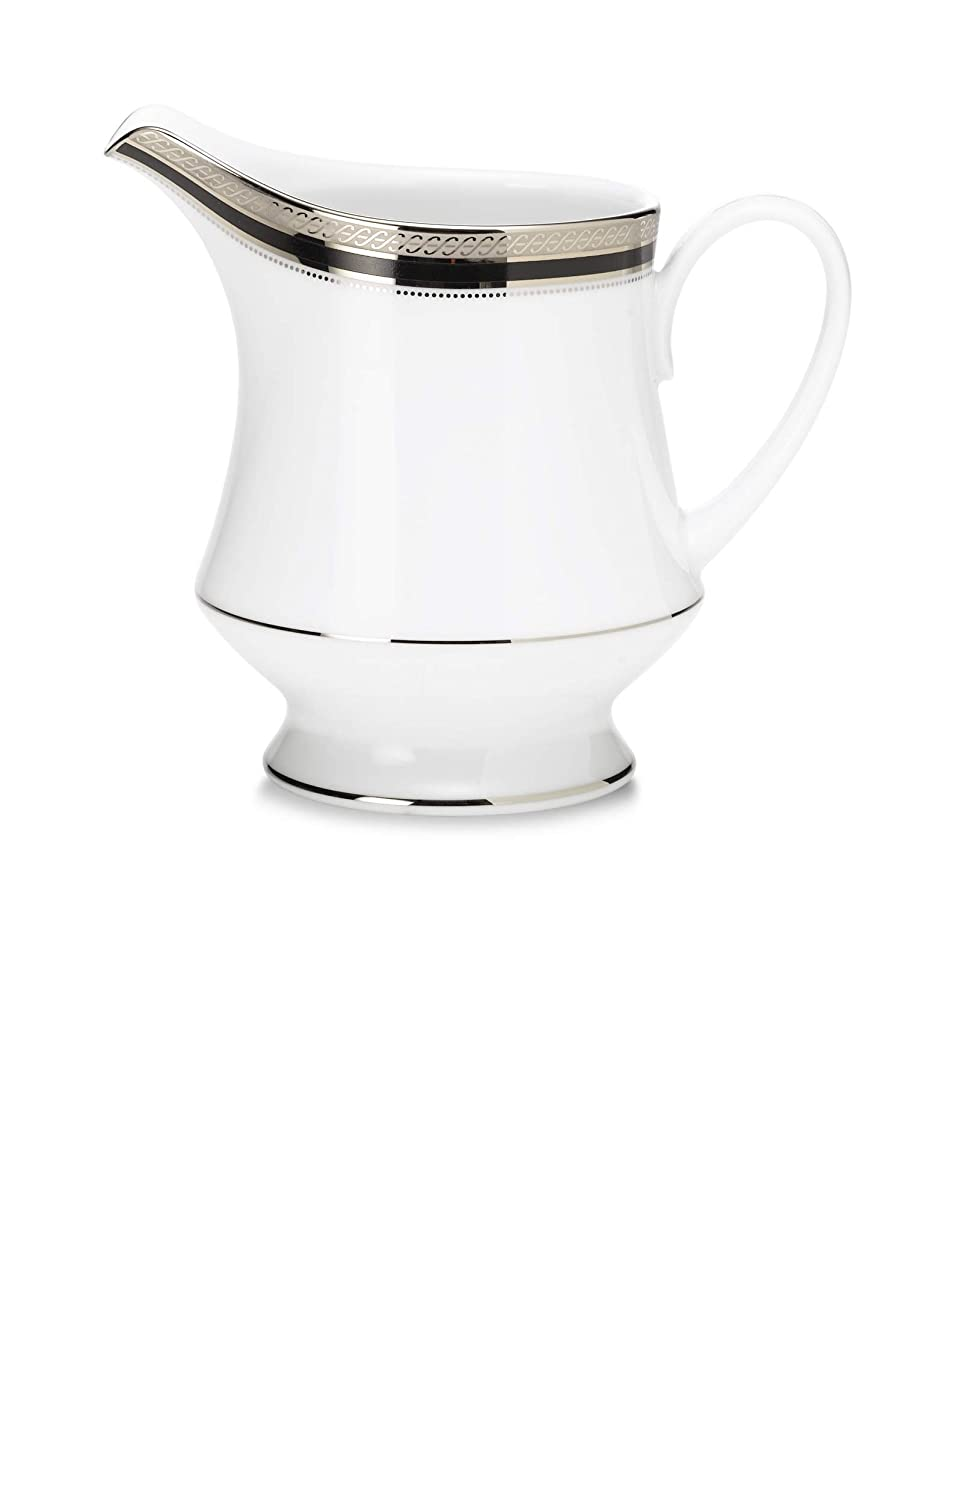 Noritake Austin Platinum Creamer Pitcher Noritake CO. INC. - DROPSHIP 4360 425